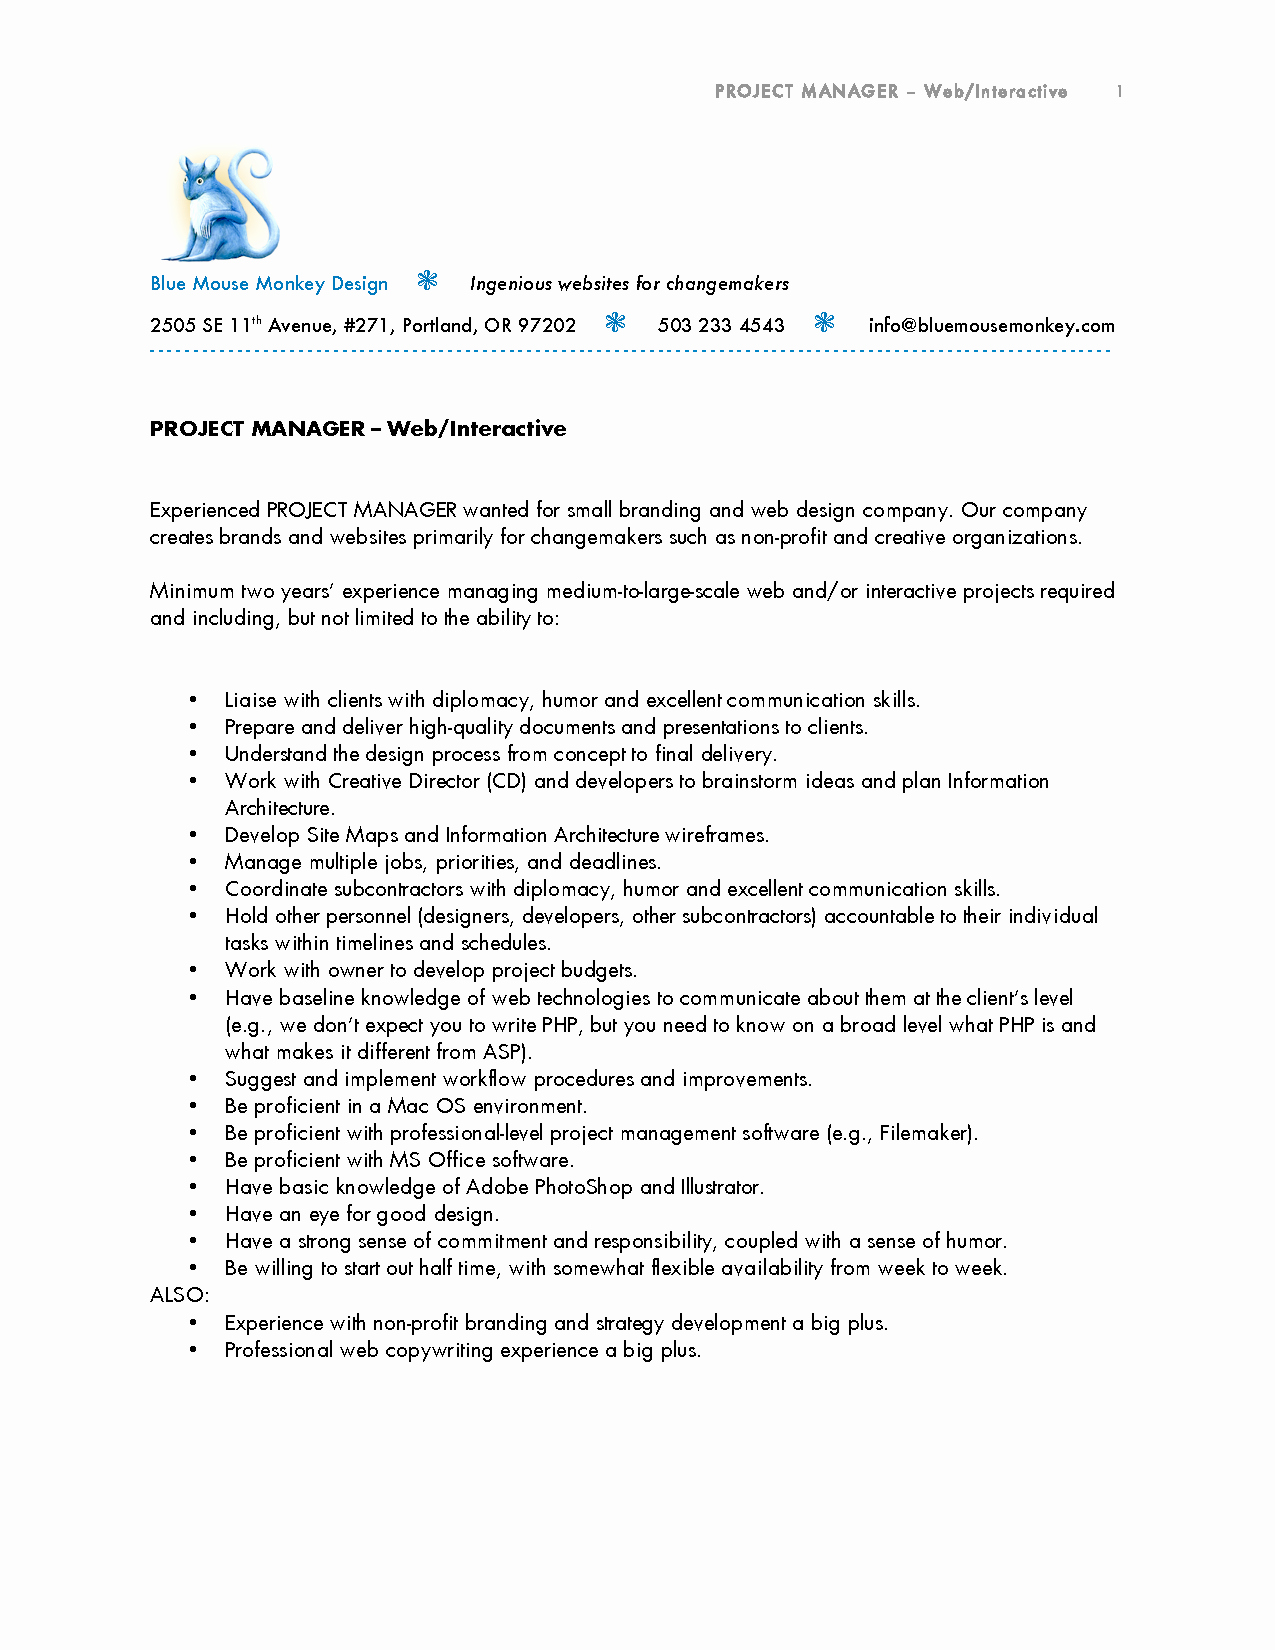 Program Manager Cover Letter Samples